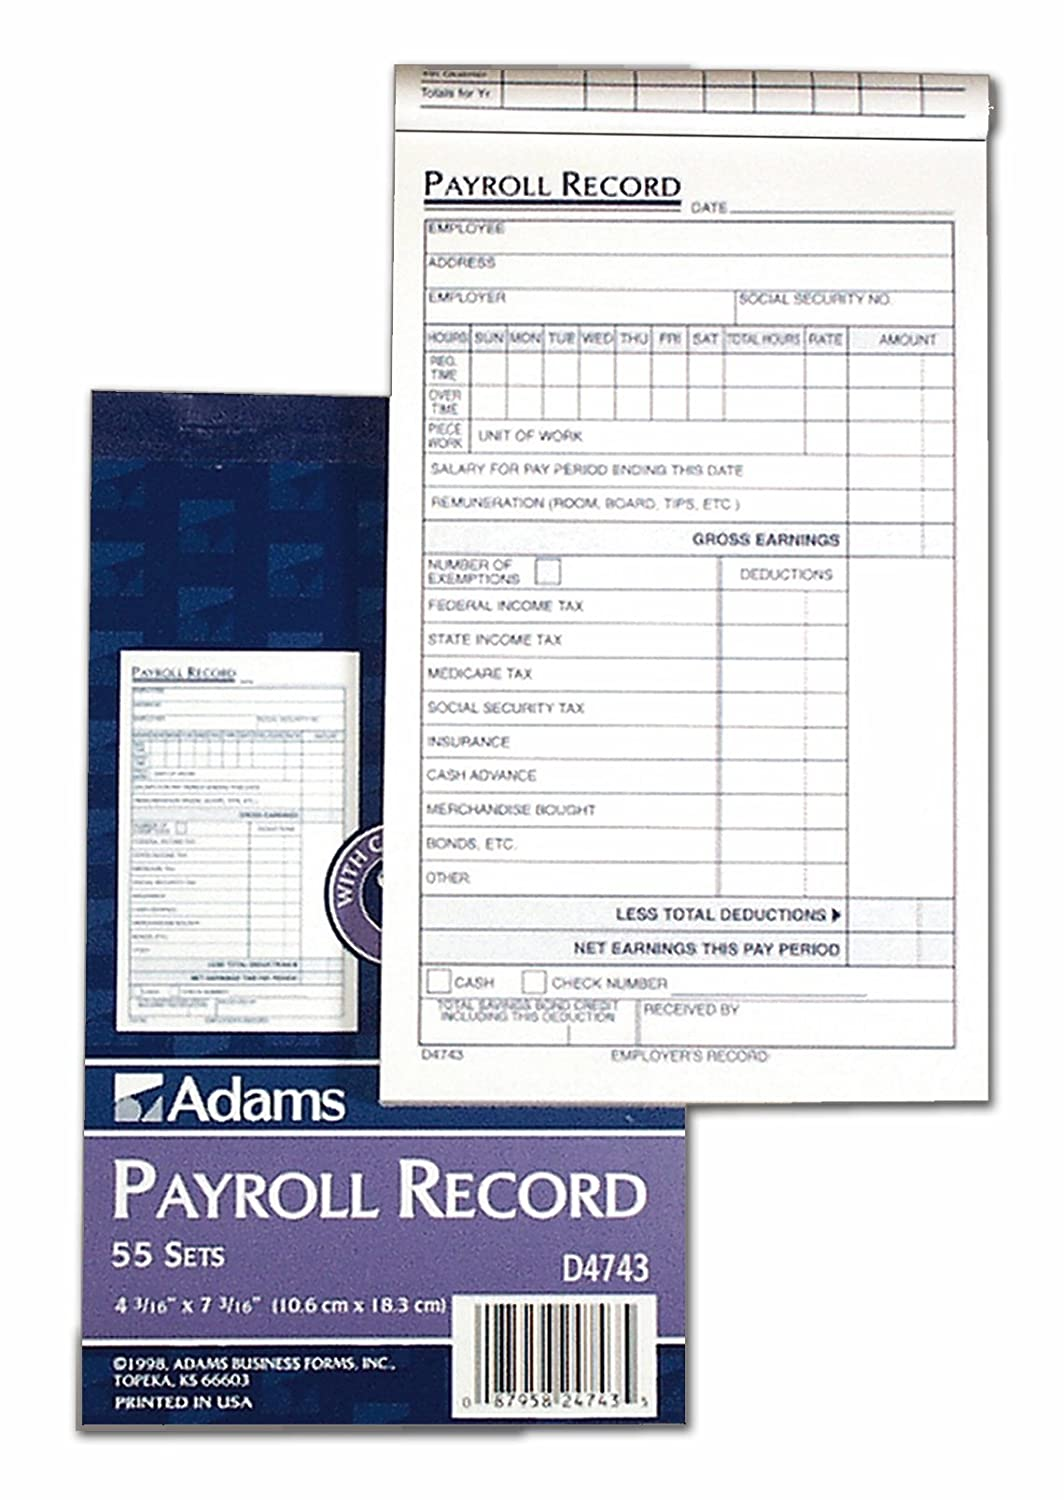 Adams Employee Payroll Record Book, 4.19 x 7.19 Inches, White and Canary, 2-Part, 55 Sets (D4743)